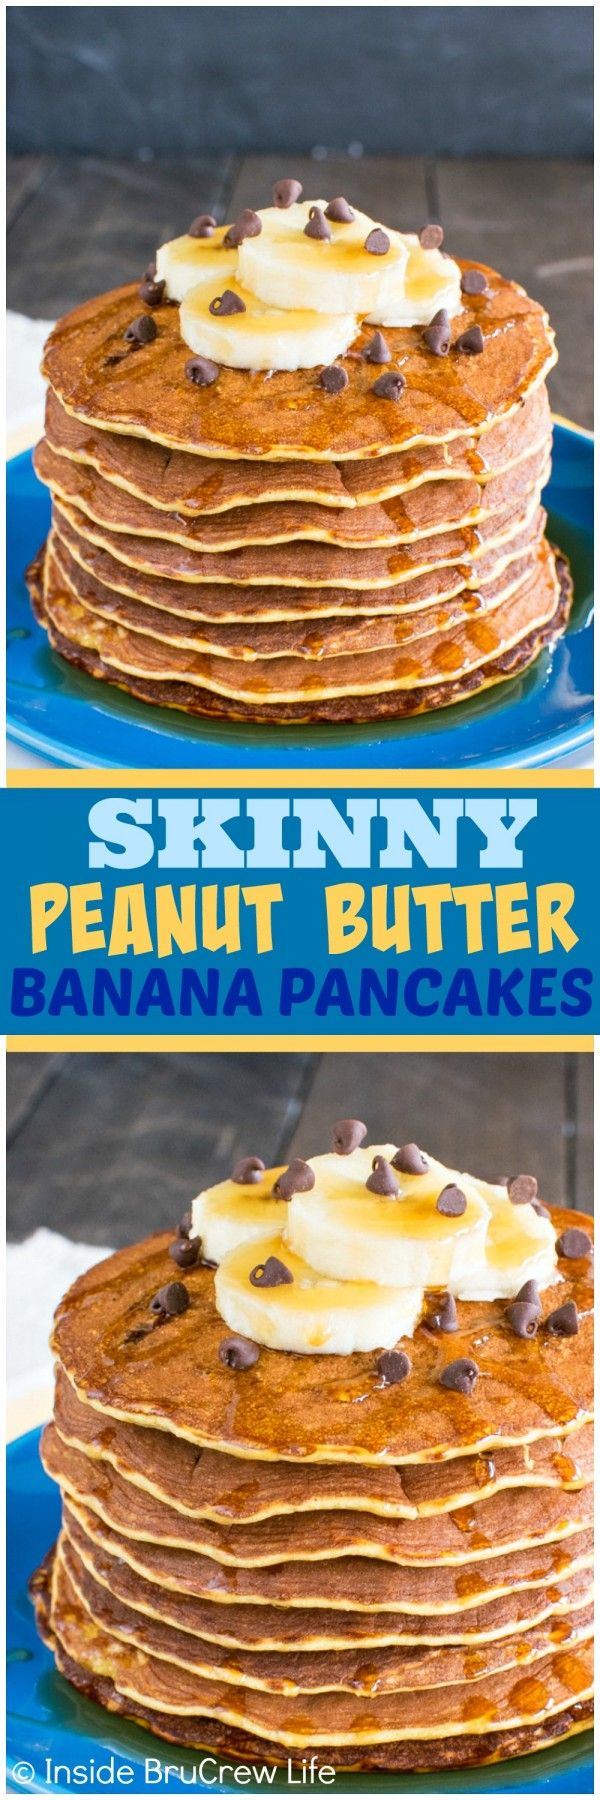 Skinny Peanut Butter Banana Pancakes - these easy pancakes are made with eggs, bananas, and peanut butter powder. Perfect healthy recipe to start out the day!